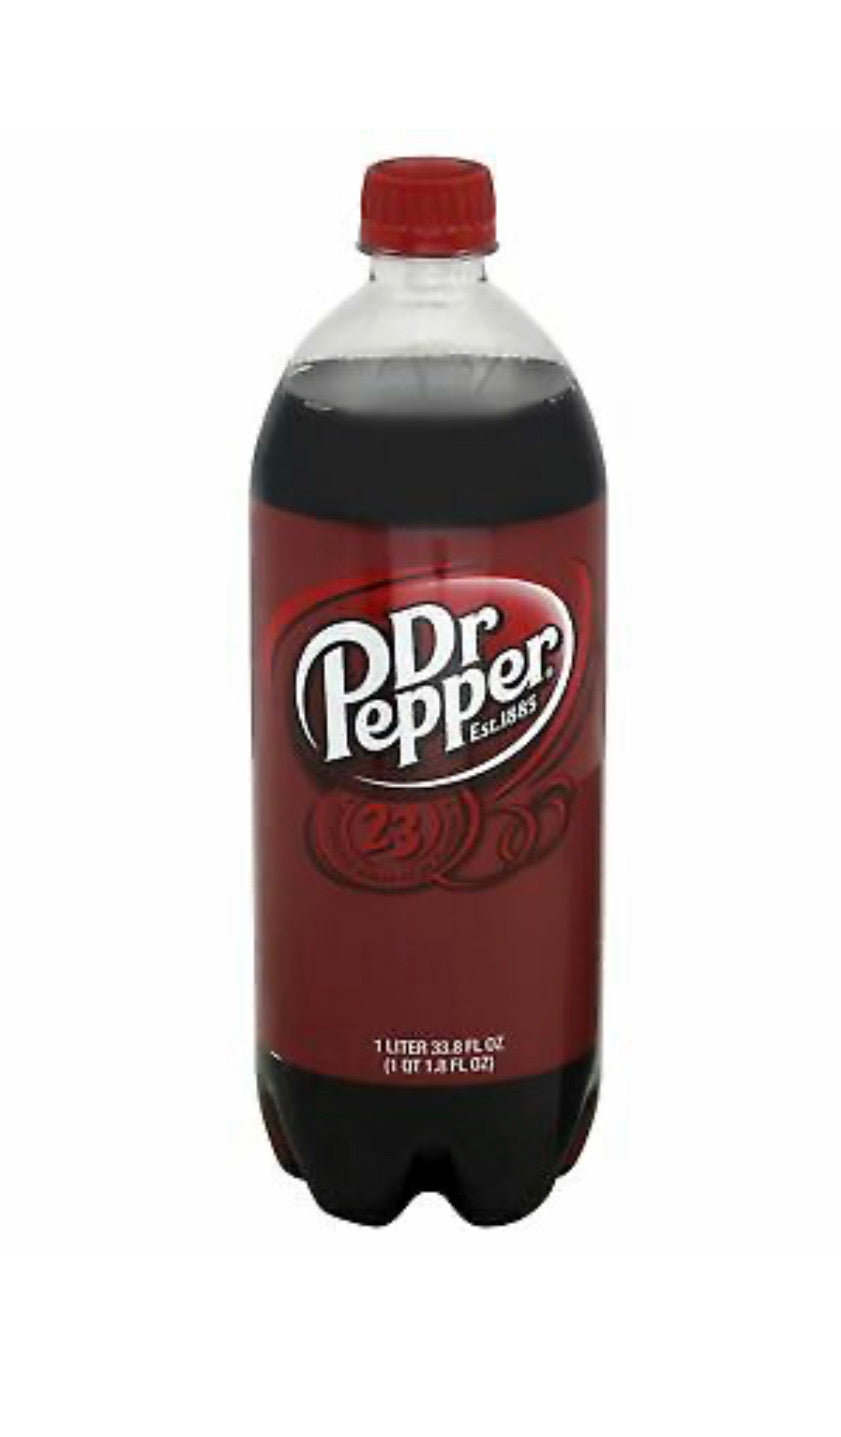 Dr. Pepper 2 Liter Bottle Special Order Bottle Diversion Safe Stash Safe - Concealment Cans Hidden Safe